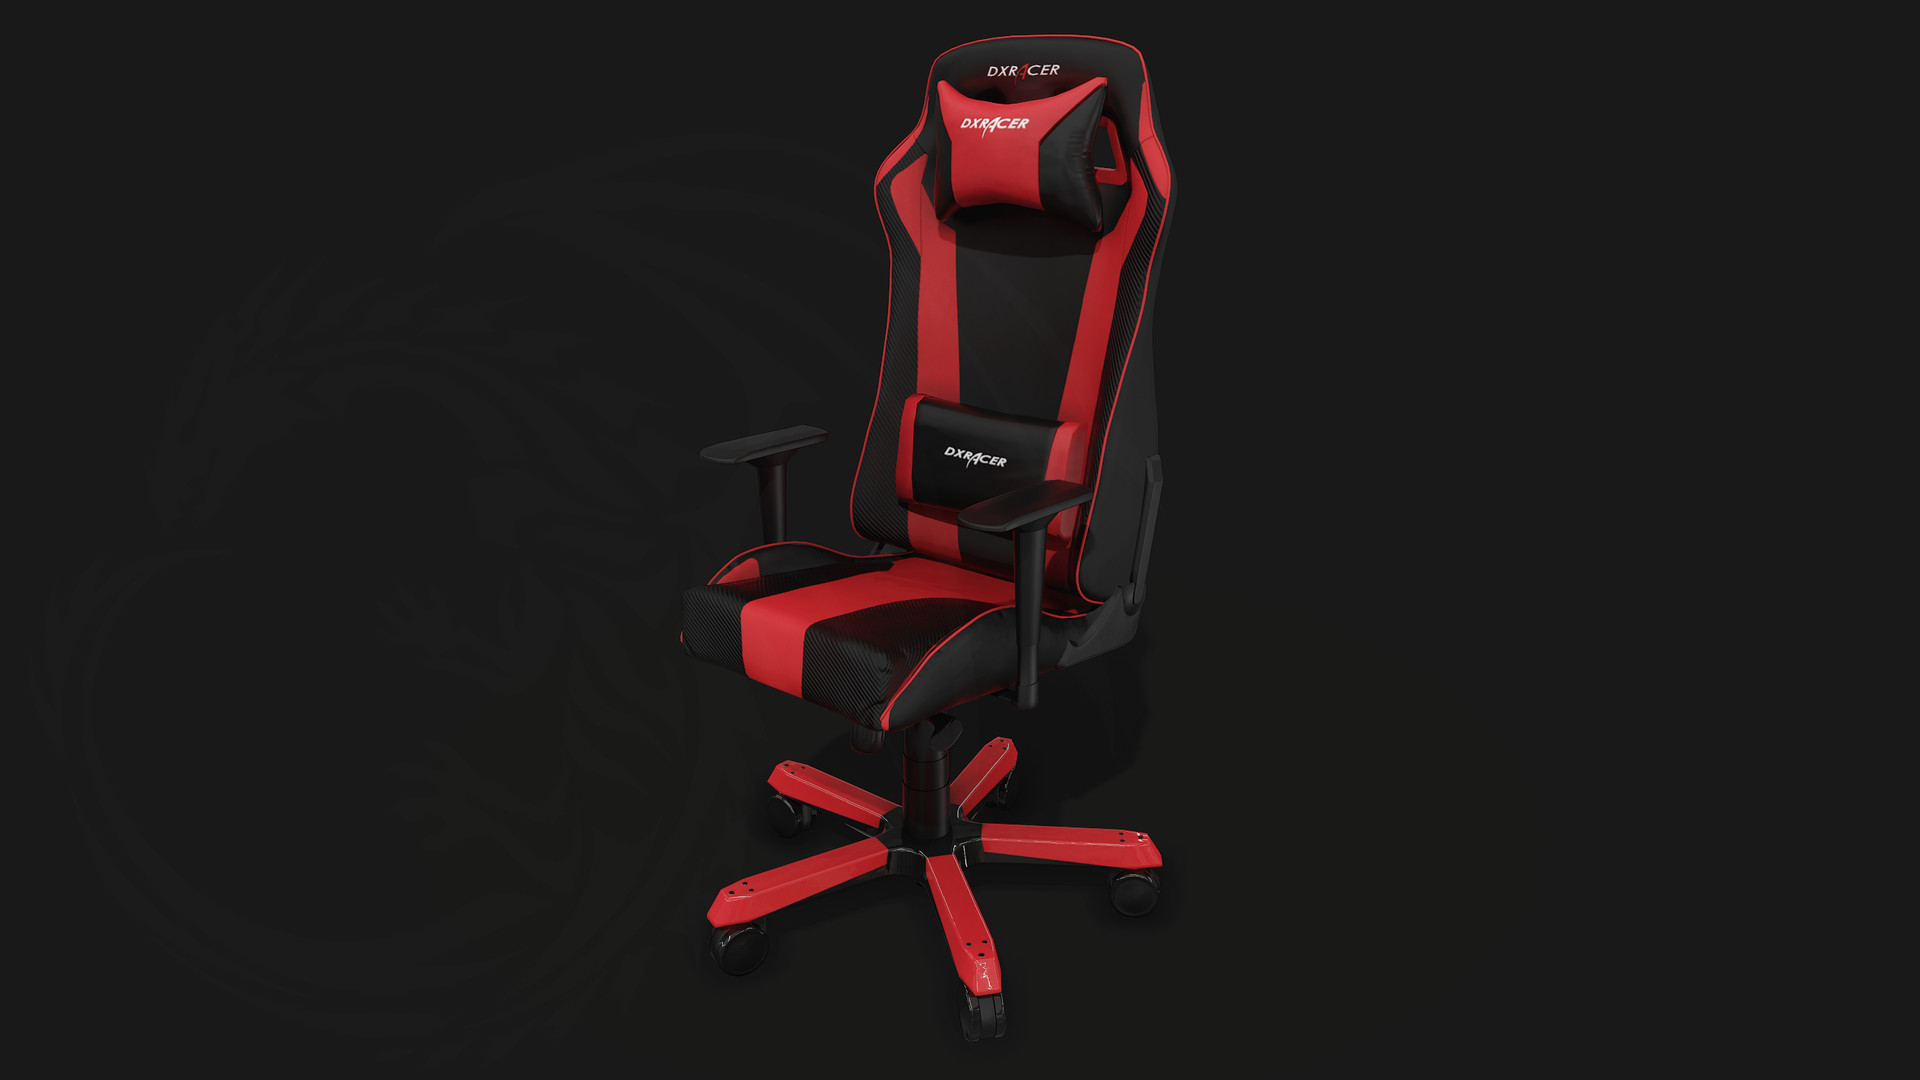 Remarkable Cordy Models Dxracer Gaming Chair King Series Machost Co Dining Chair Design Ideas Machostcouk